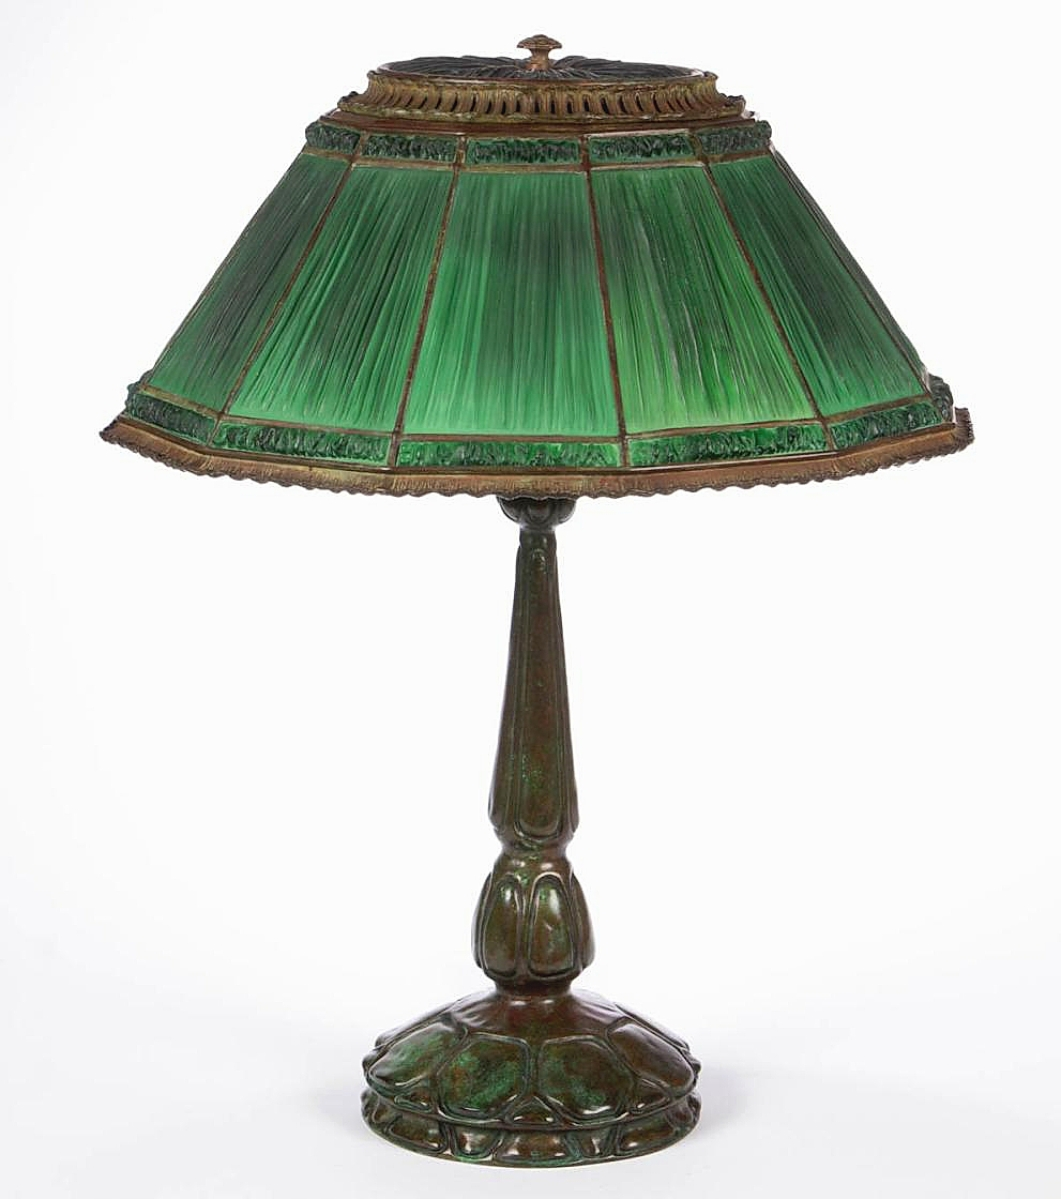 Let there be light! This Tiffany Studios linenfold and turtleback art glass electric table lamp, in undamaged original condition, realized the brightest price as it brought $21,060 from an East Coast collector bidding on the phone ($10/15,000).